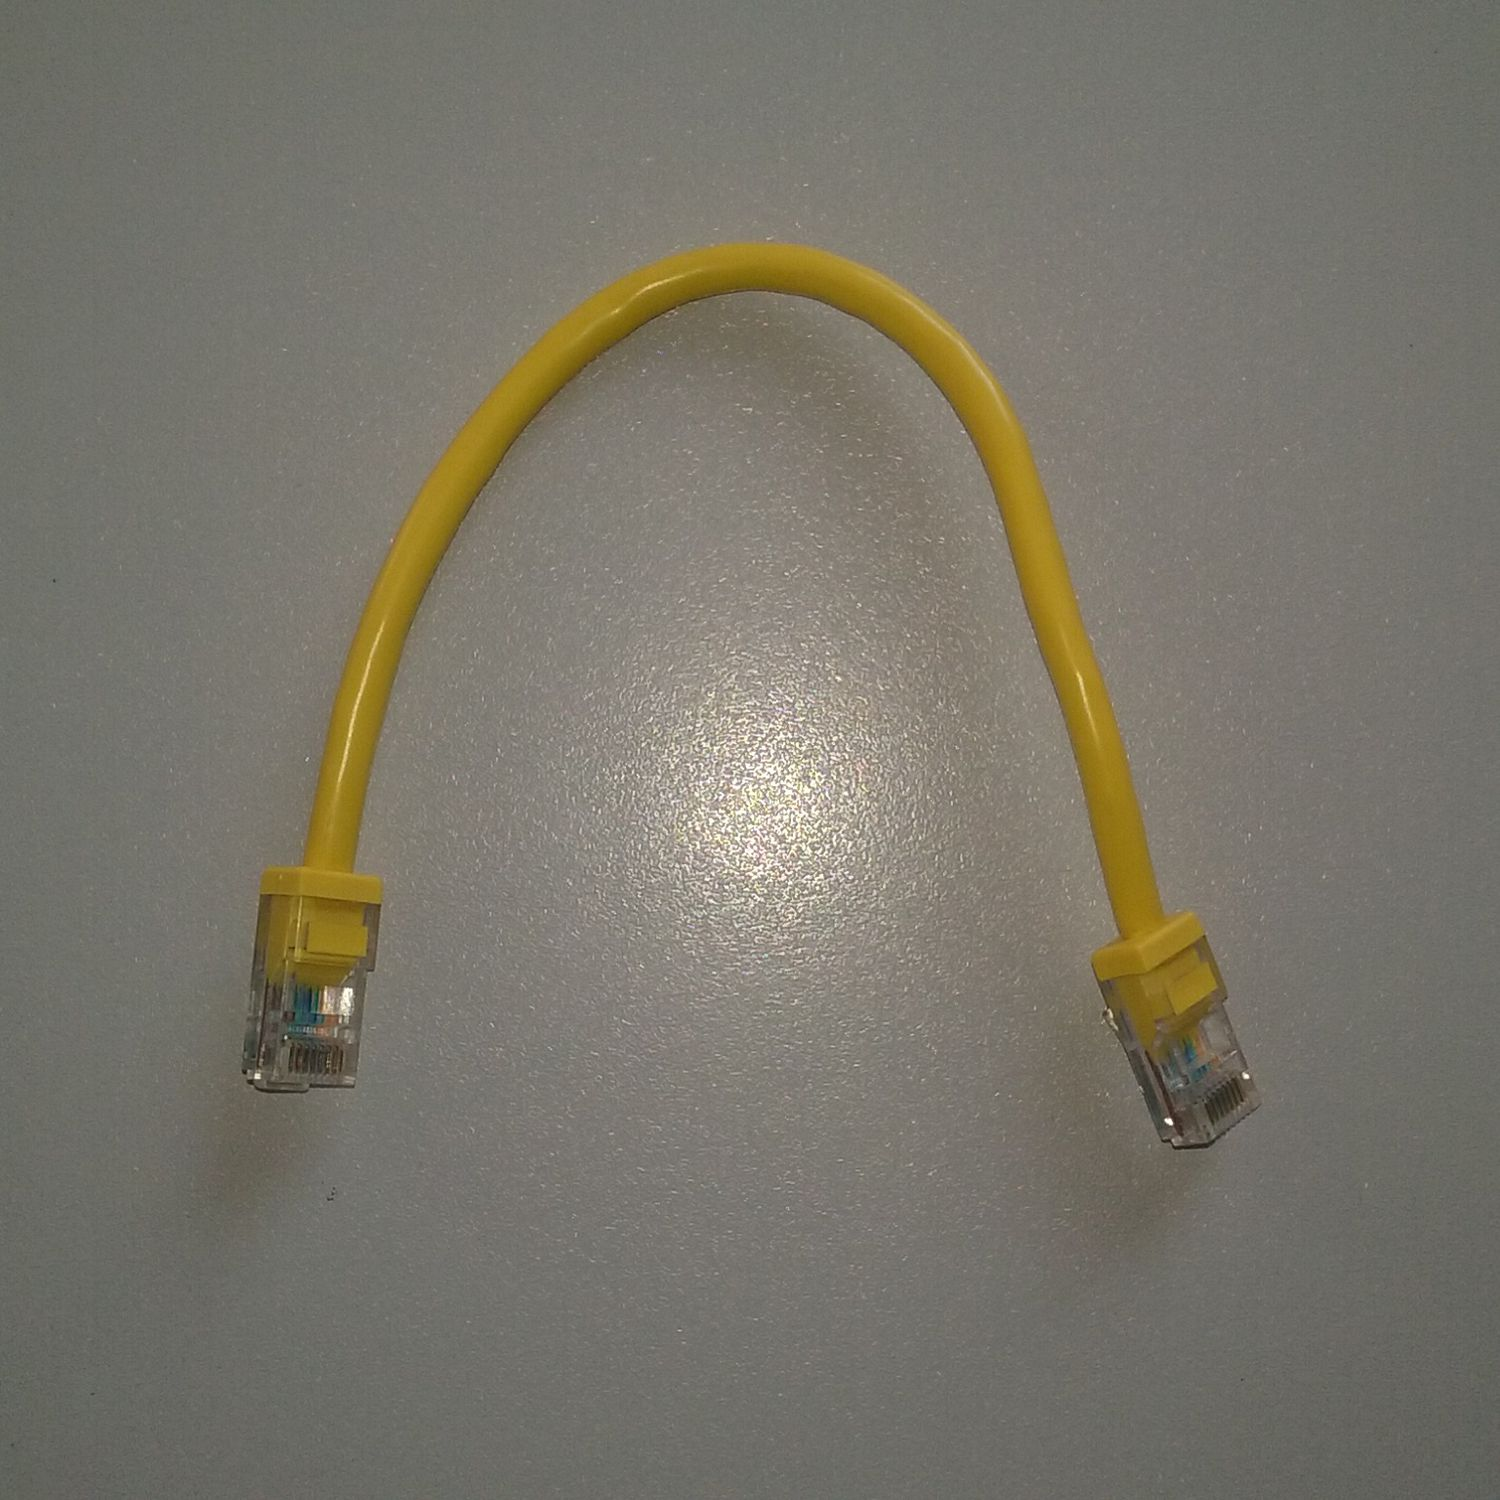 Data Electrical Cable Rj45 Ets Louis Schneider Gps Circuit Assemblydata Collection Board Assembly